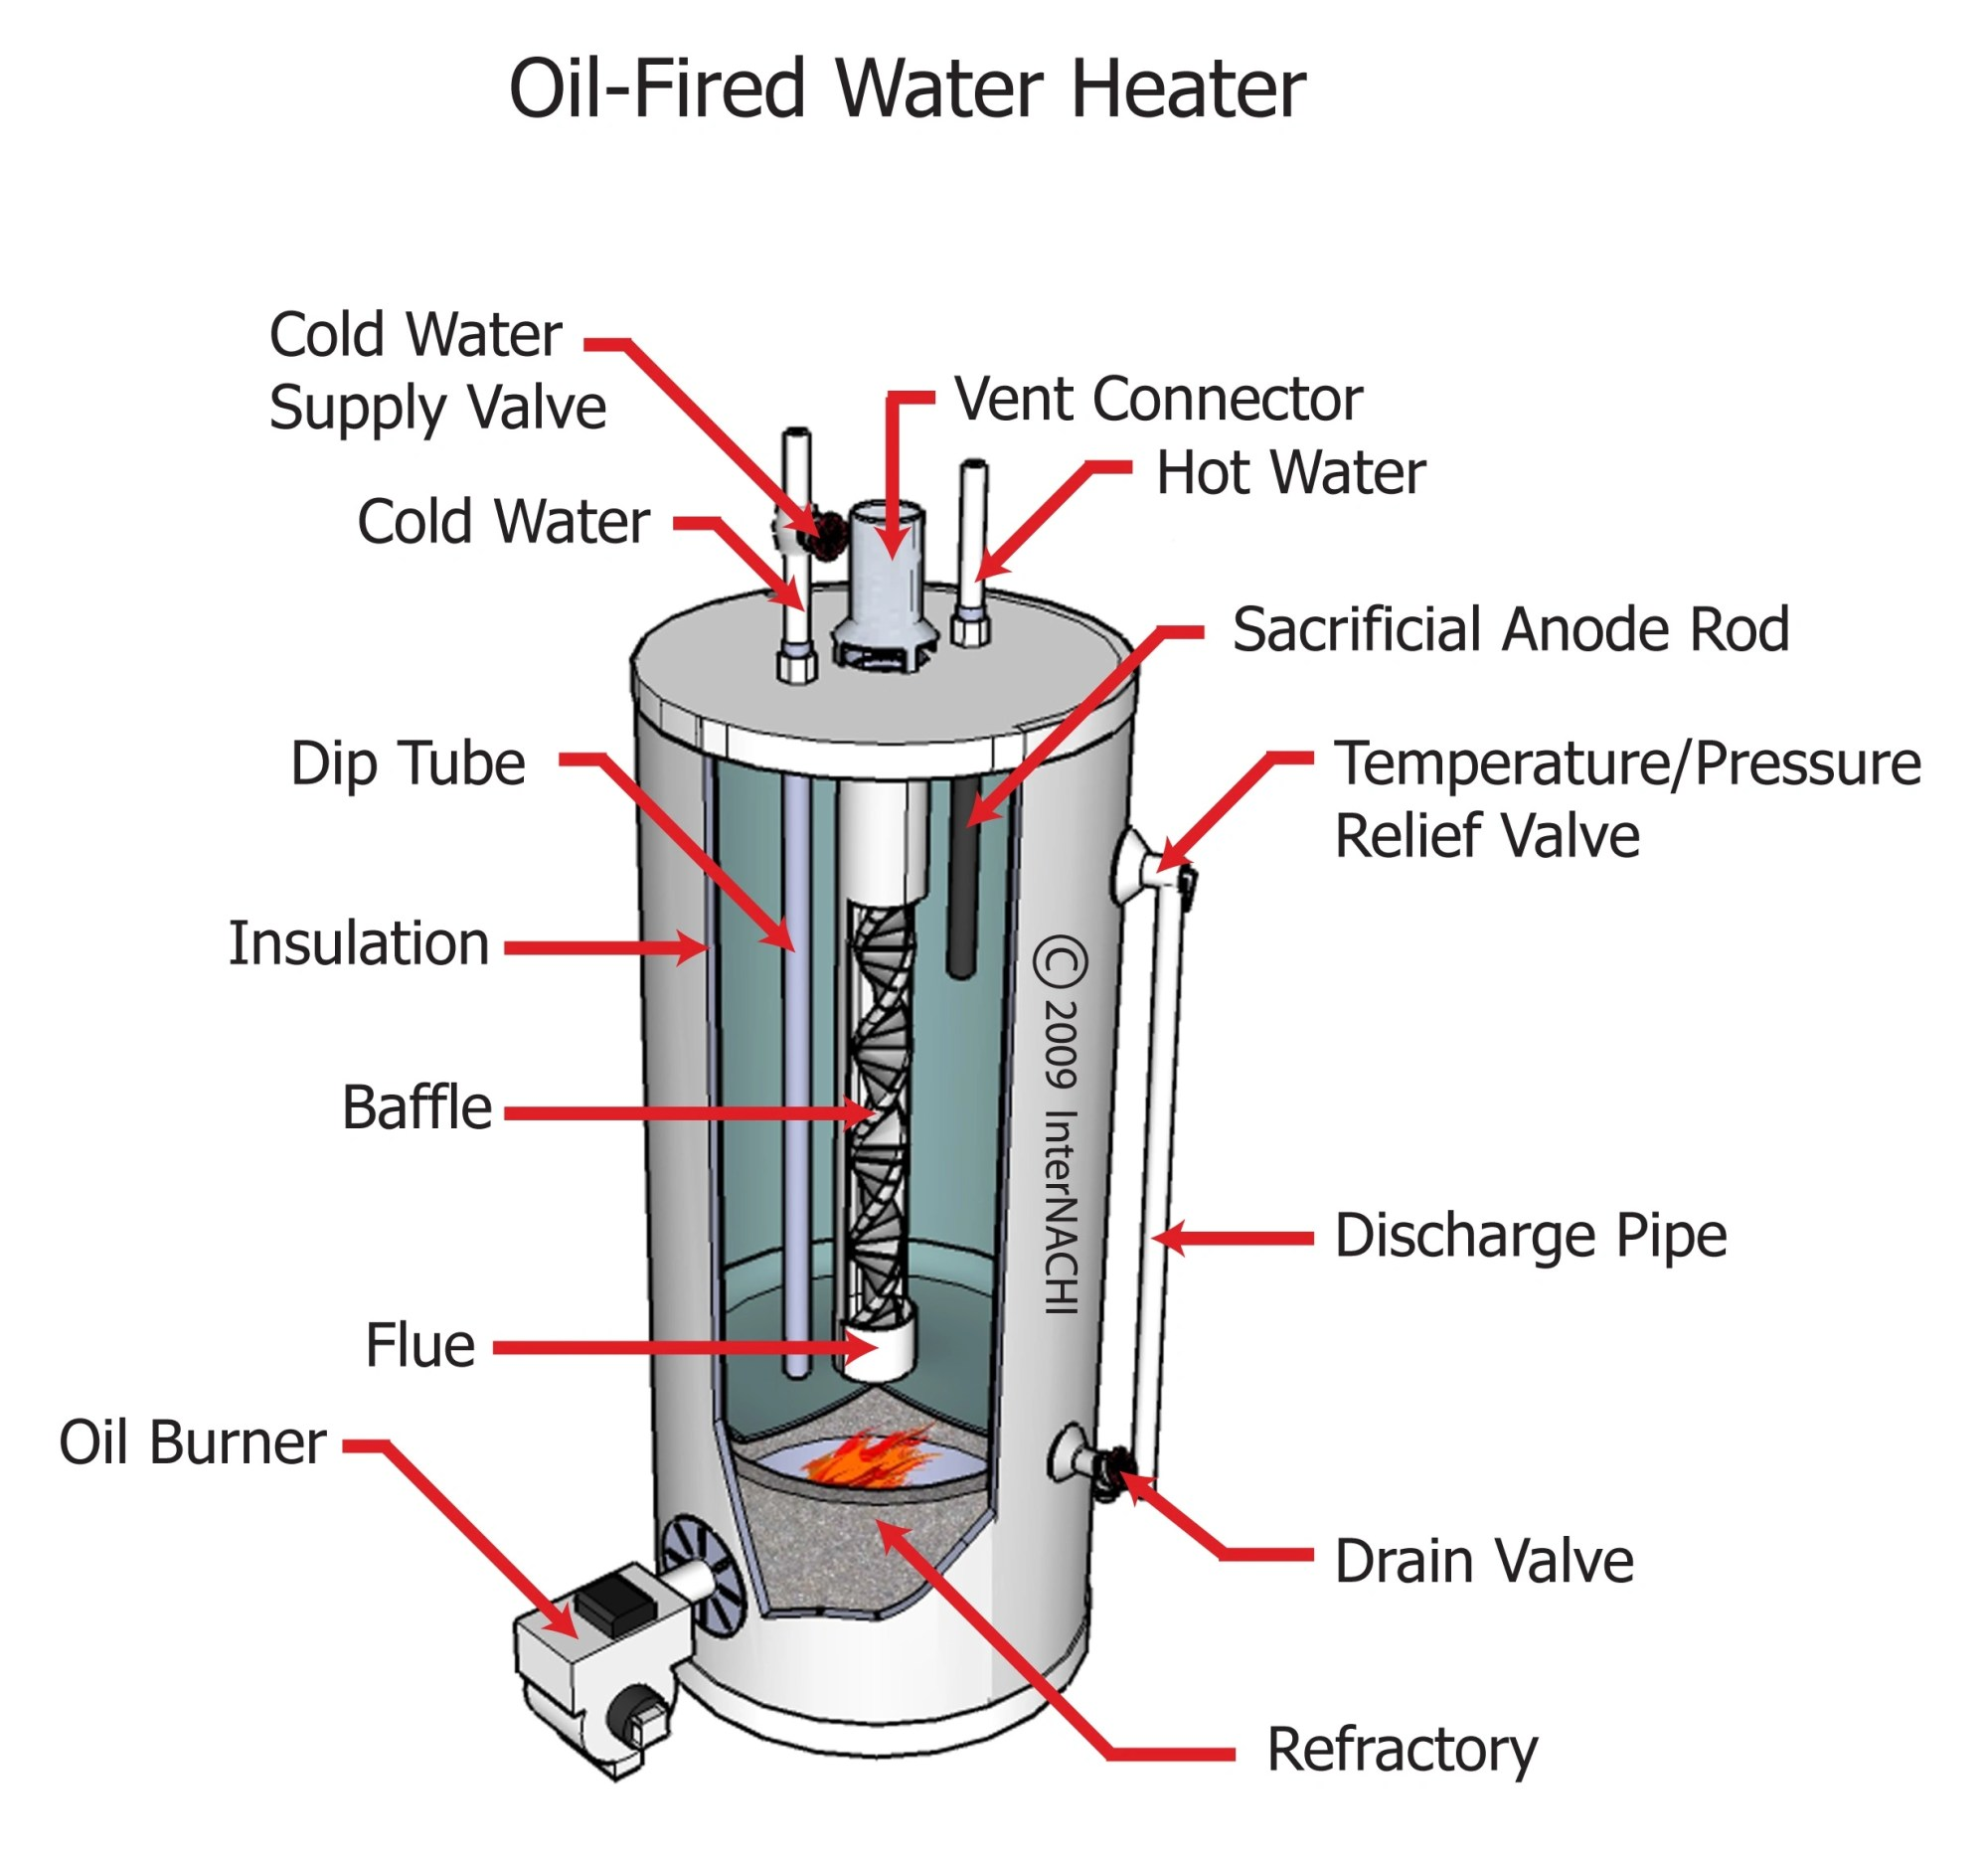 hight resolution of oil water heater diagram 24 wiring diagram images elec hot water heater diagram oil fired hot water heater diagram